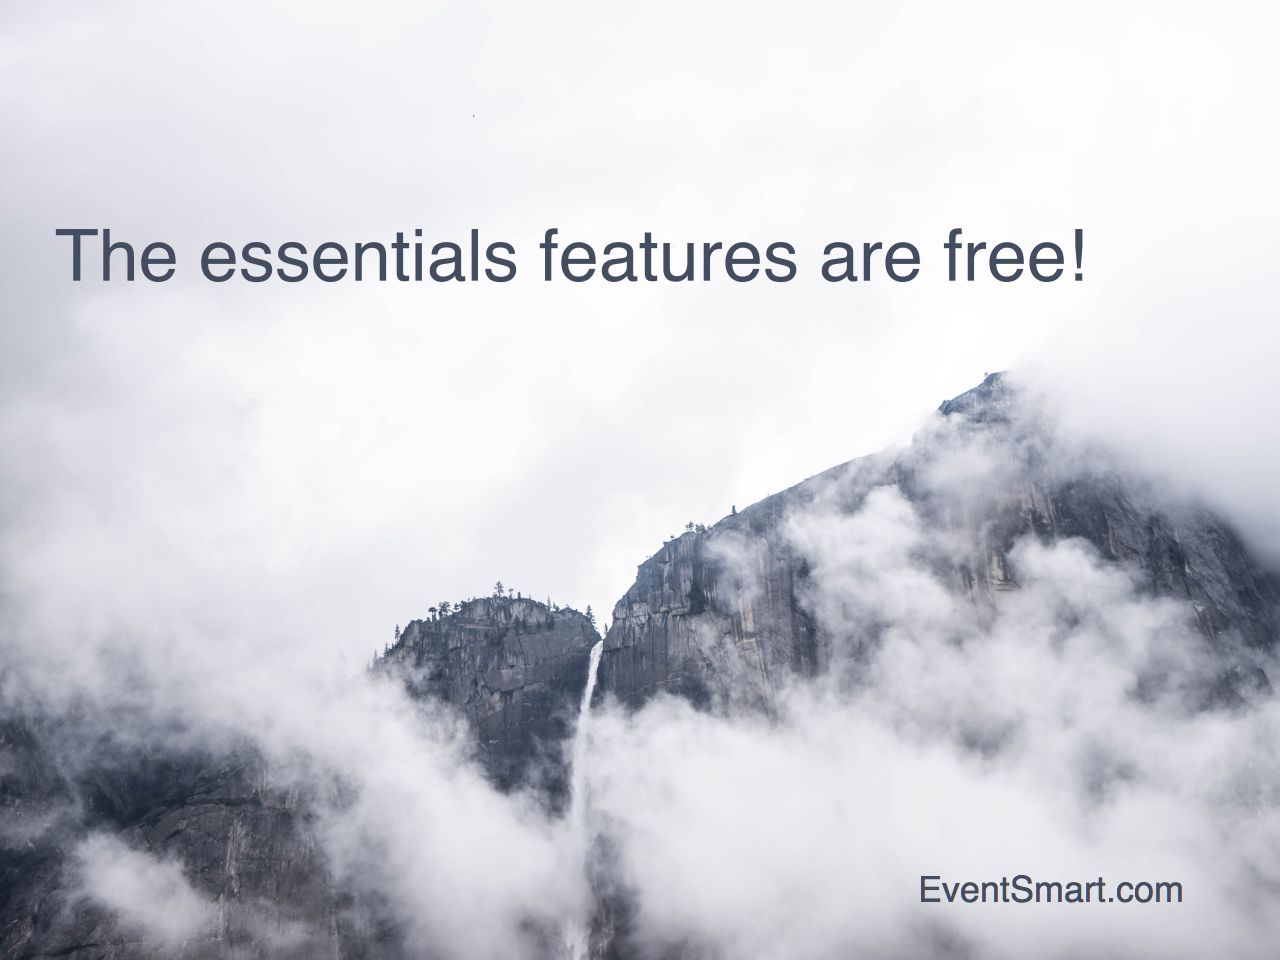 The essential online event registration and ticketing management tools are free.